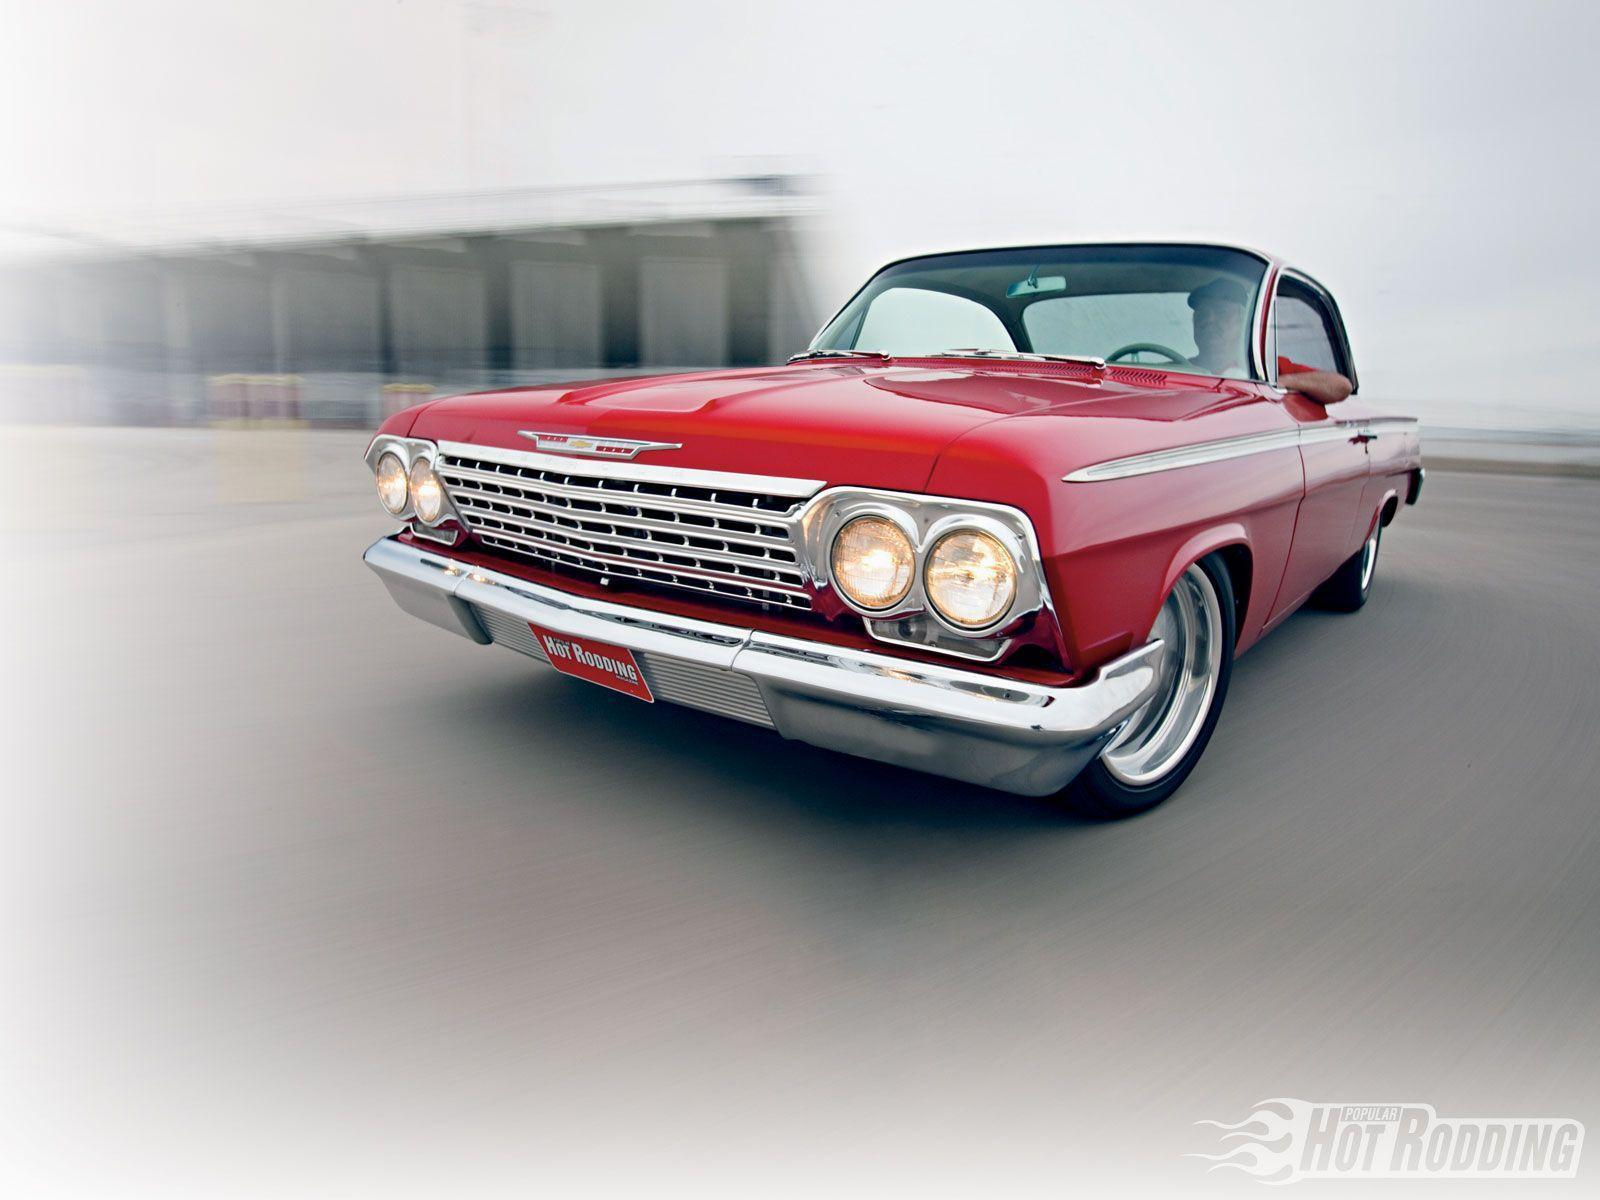 1962 Chevy Impala Computer Wallpapers, Desktop Backgrounds